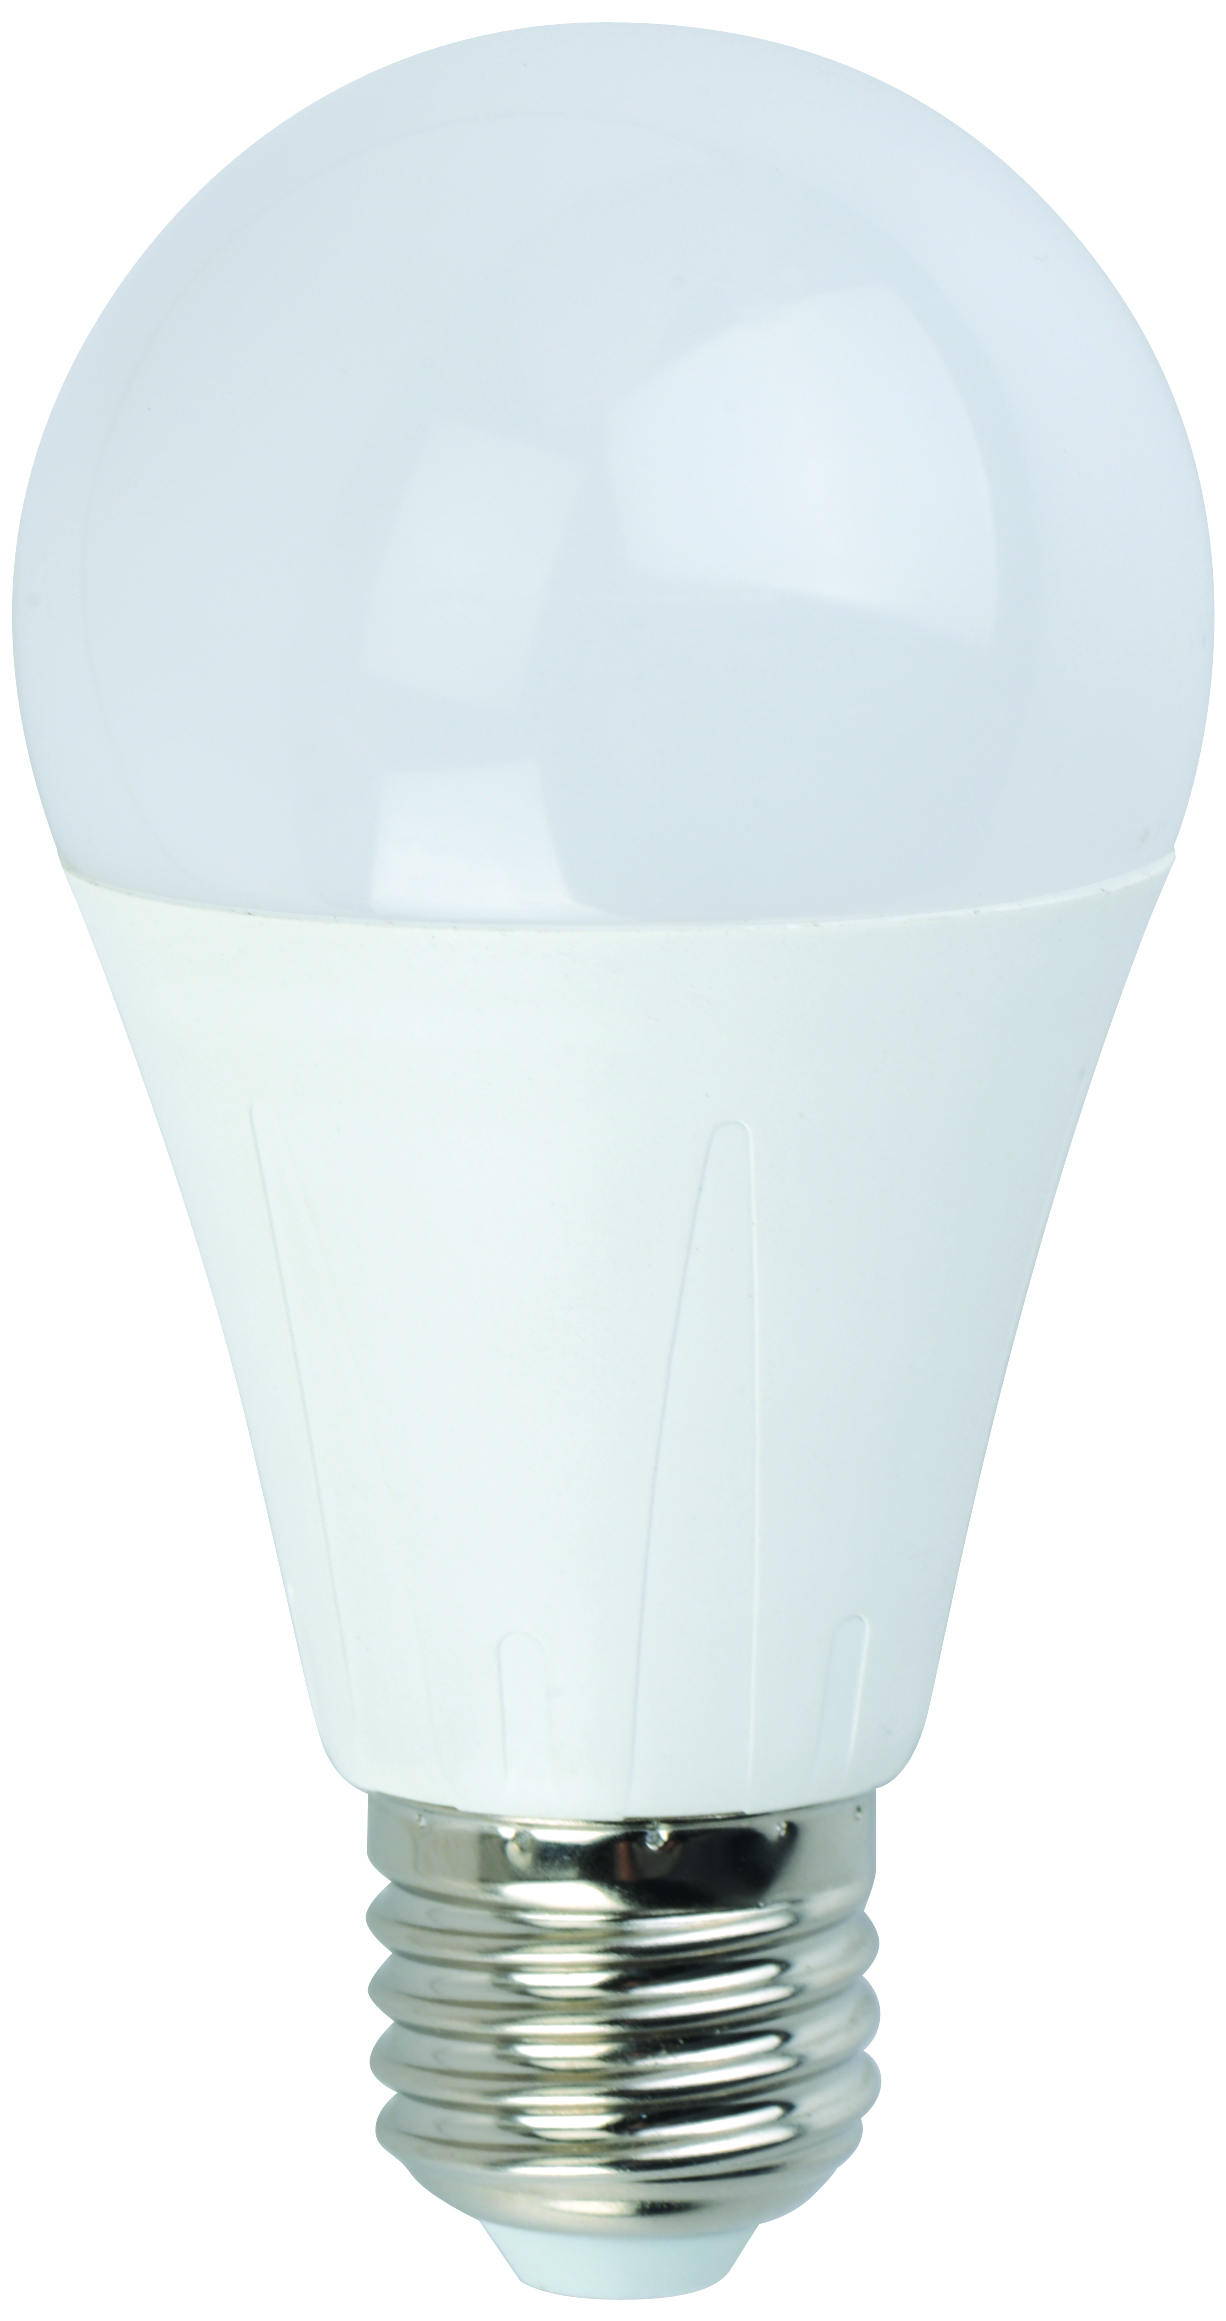 High Quality TUV-GS CE ROHS Passed B60AP LED Bulb 12W 1055lm E27